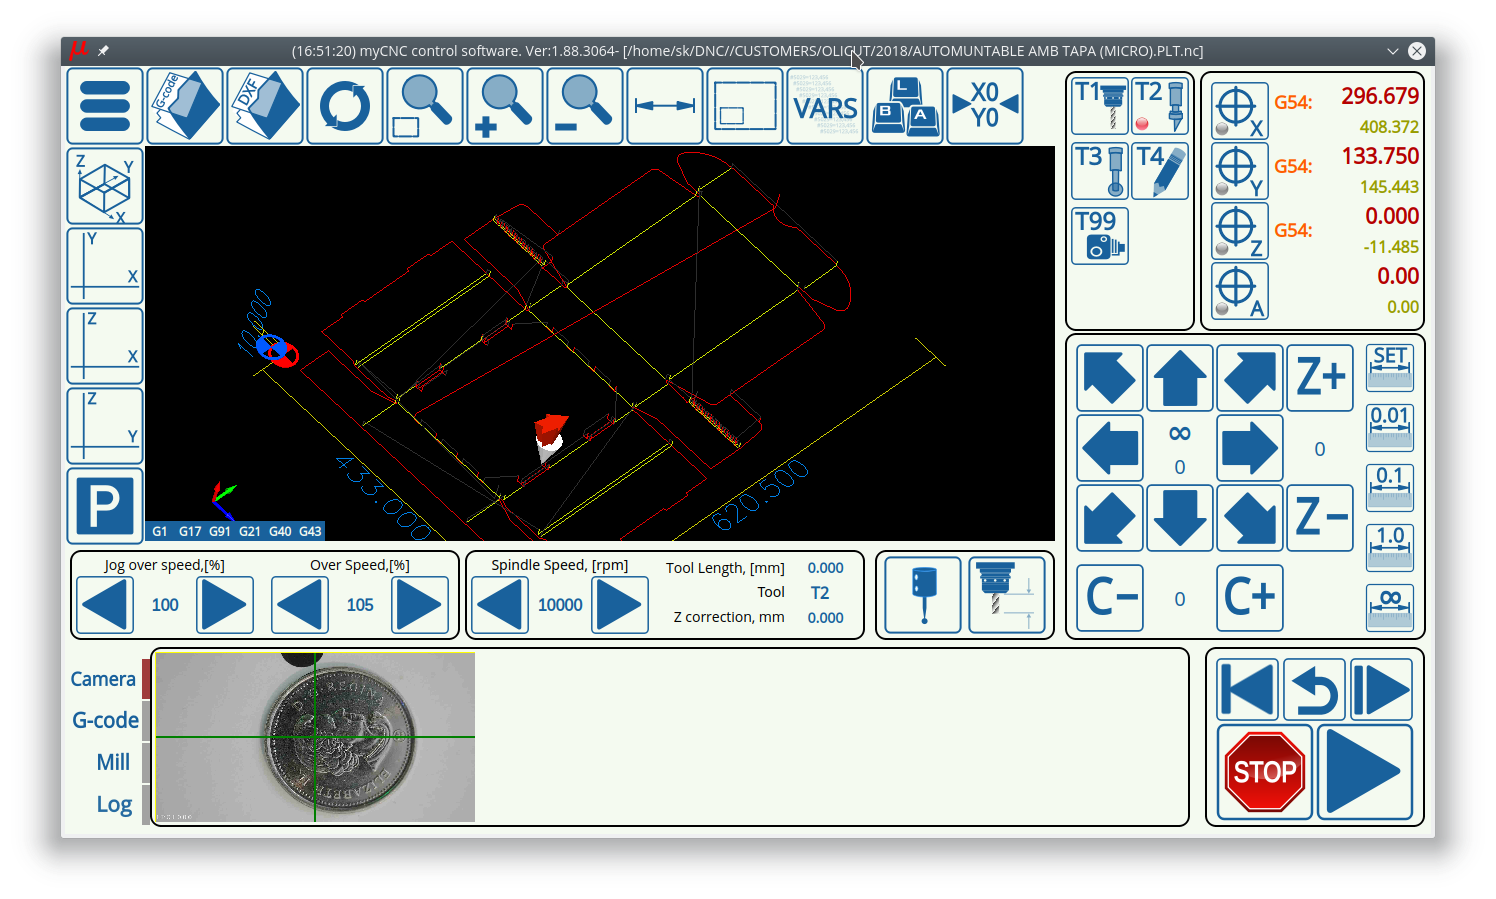 myCNC - advanced CNC control, software - Download